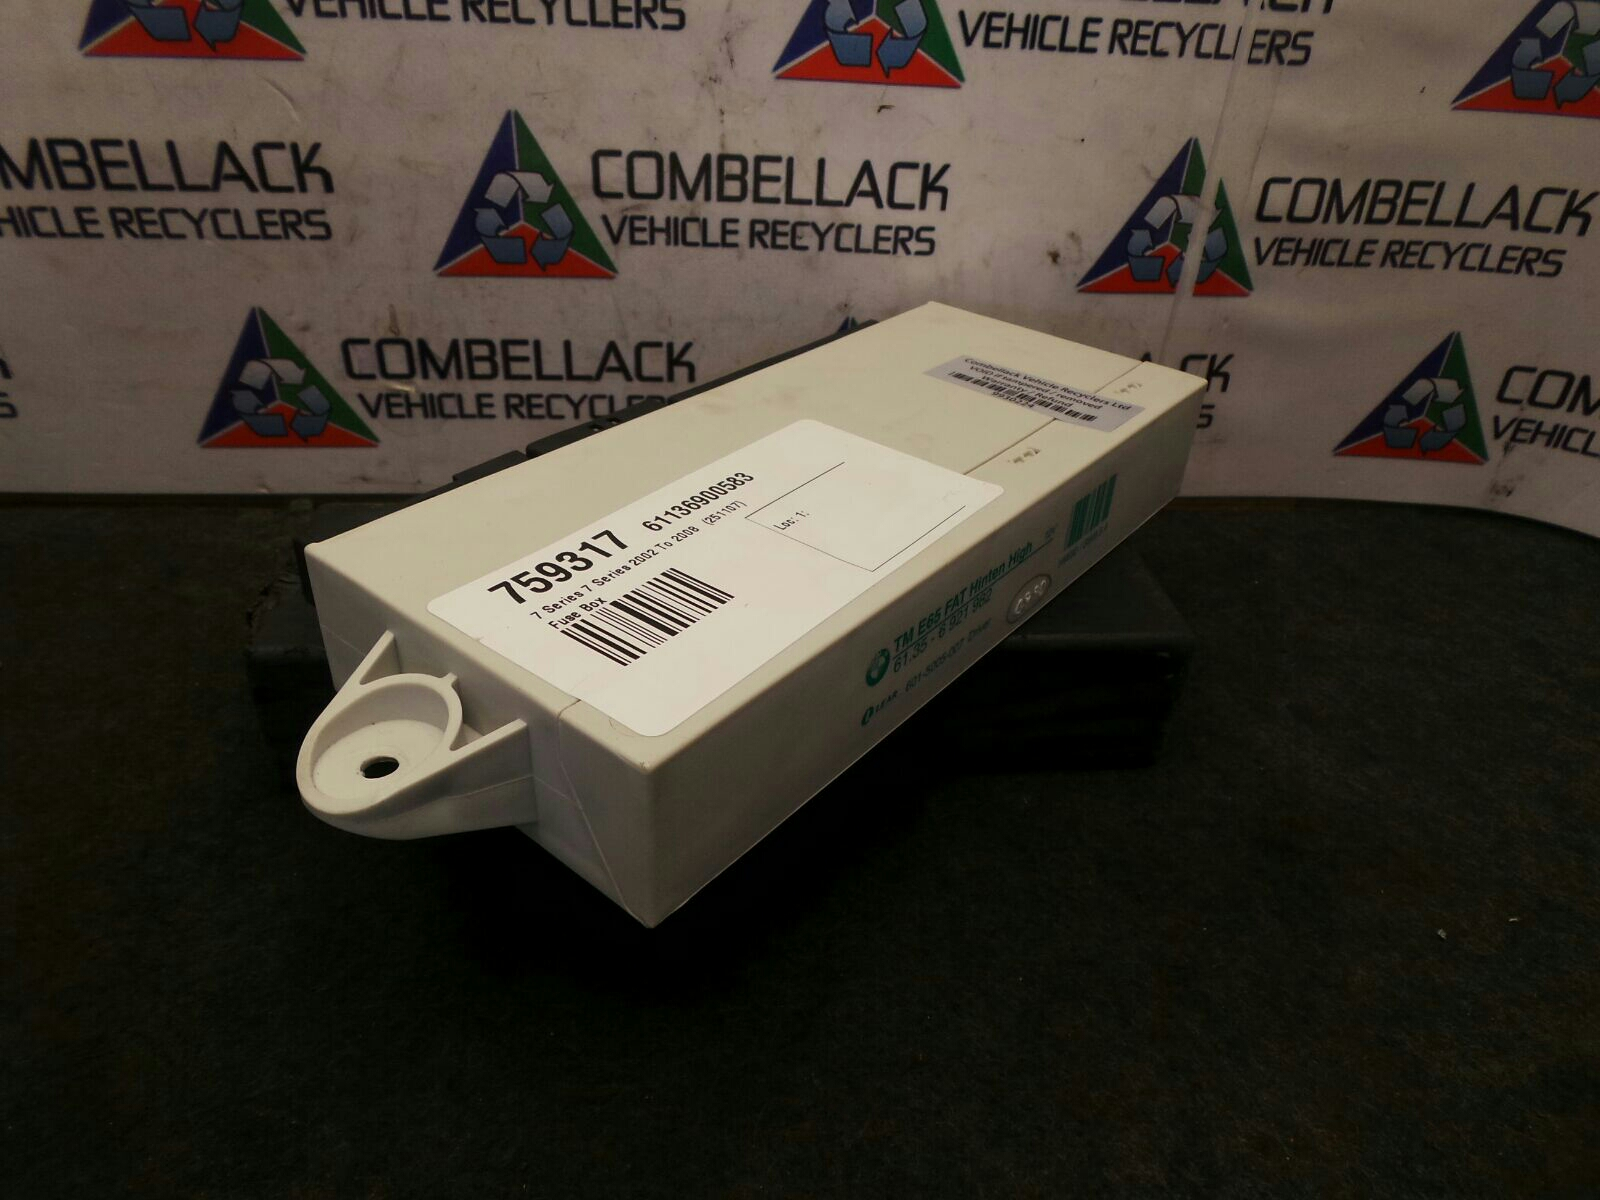 Bmw 7 Series 2002 To 2008 745i Fuse Box Used And Spare Parts At Combellack Vehicle Recyclers